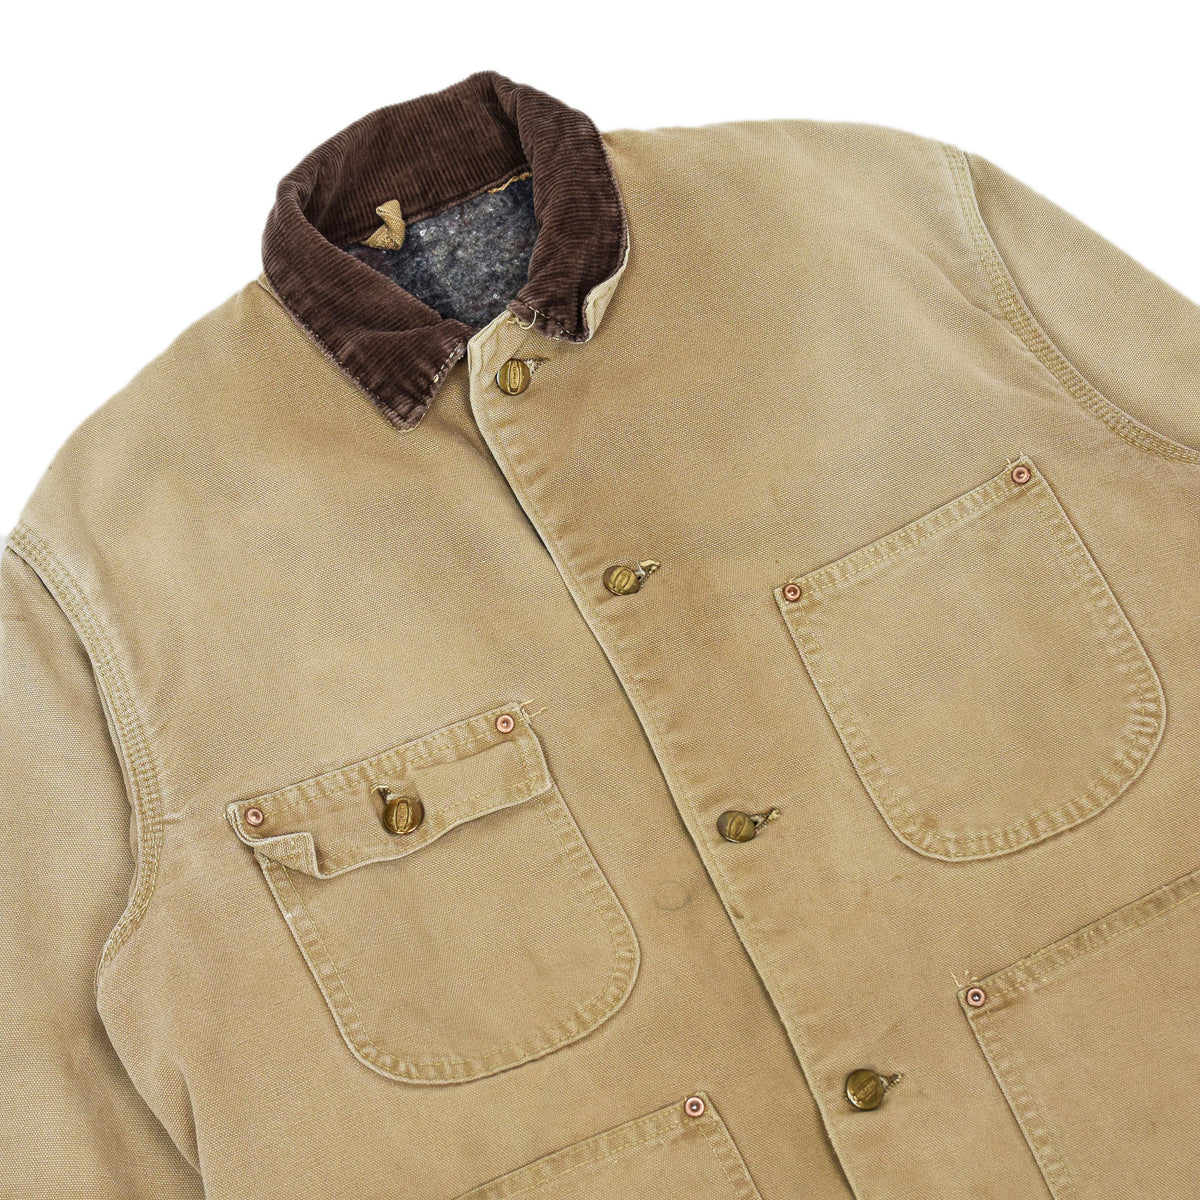 Vintage 70s Carhartt Michigan Blanket Lined Tan Brown Worker Chore Jacket S / M chest